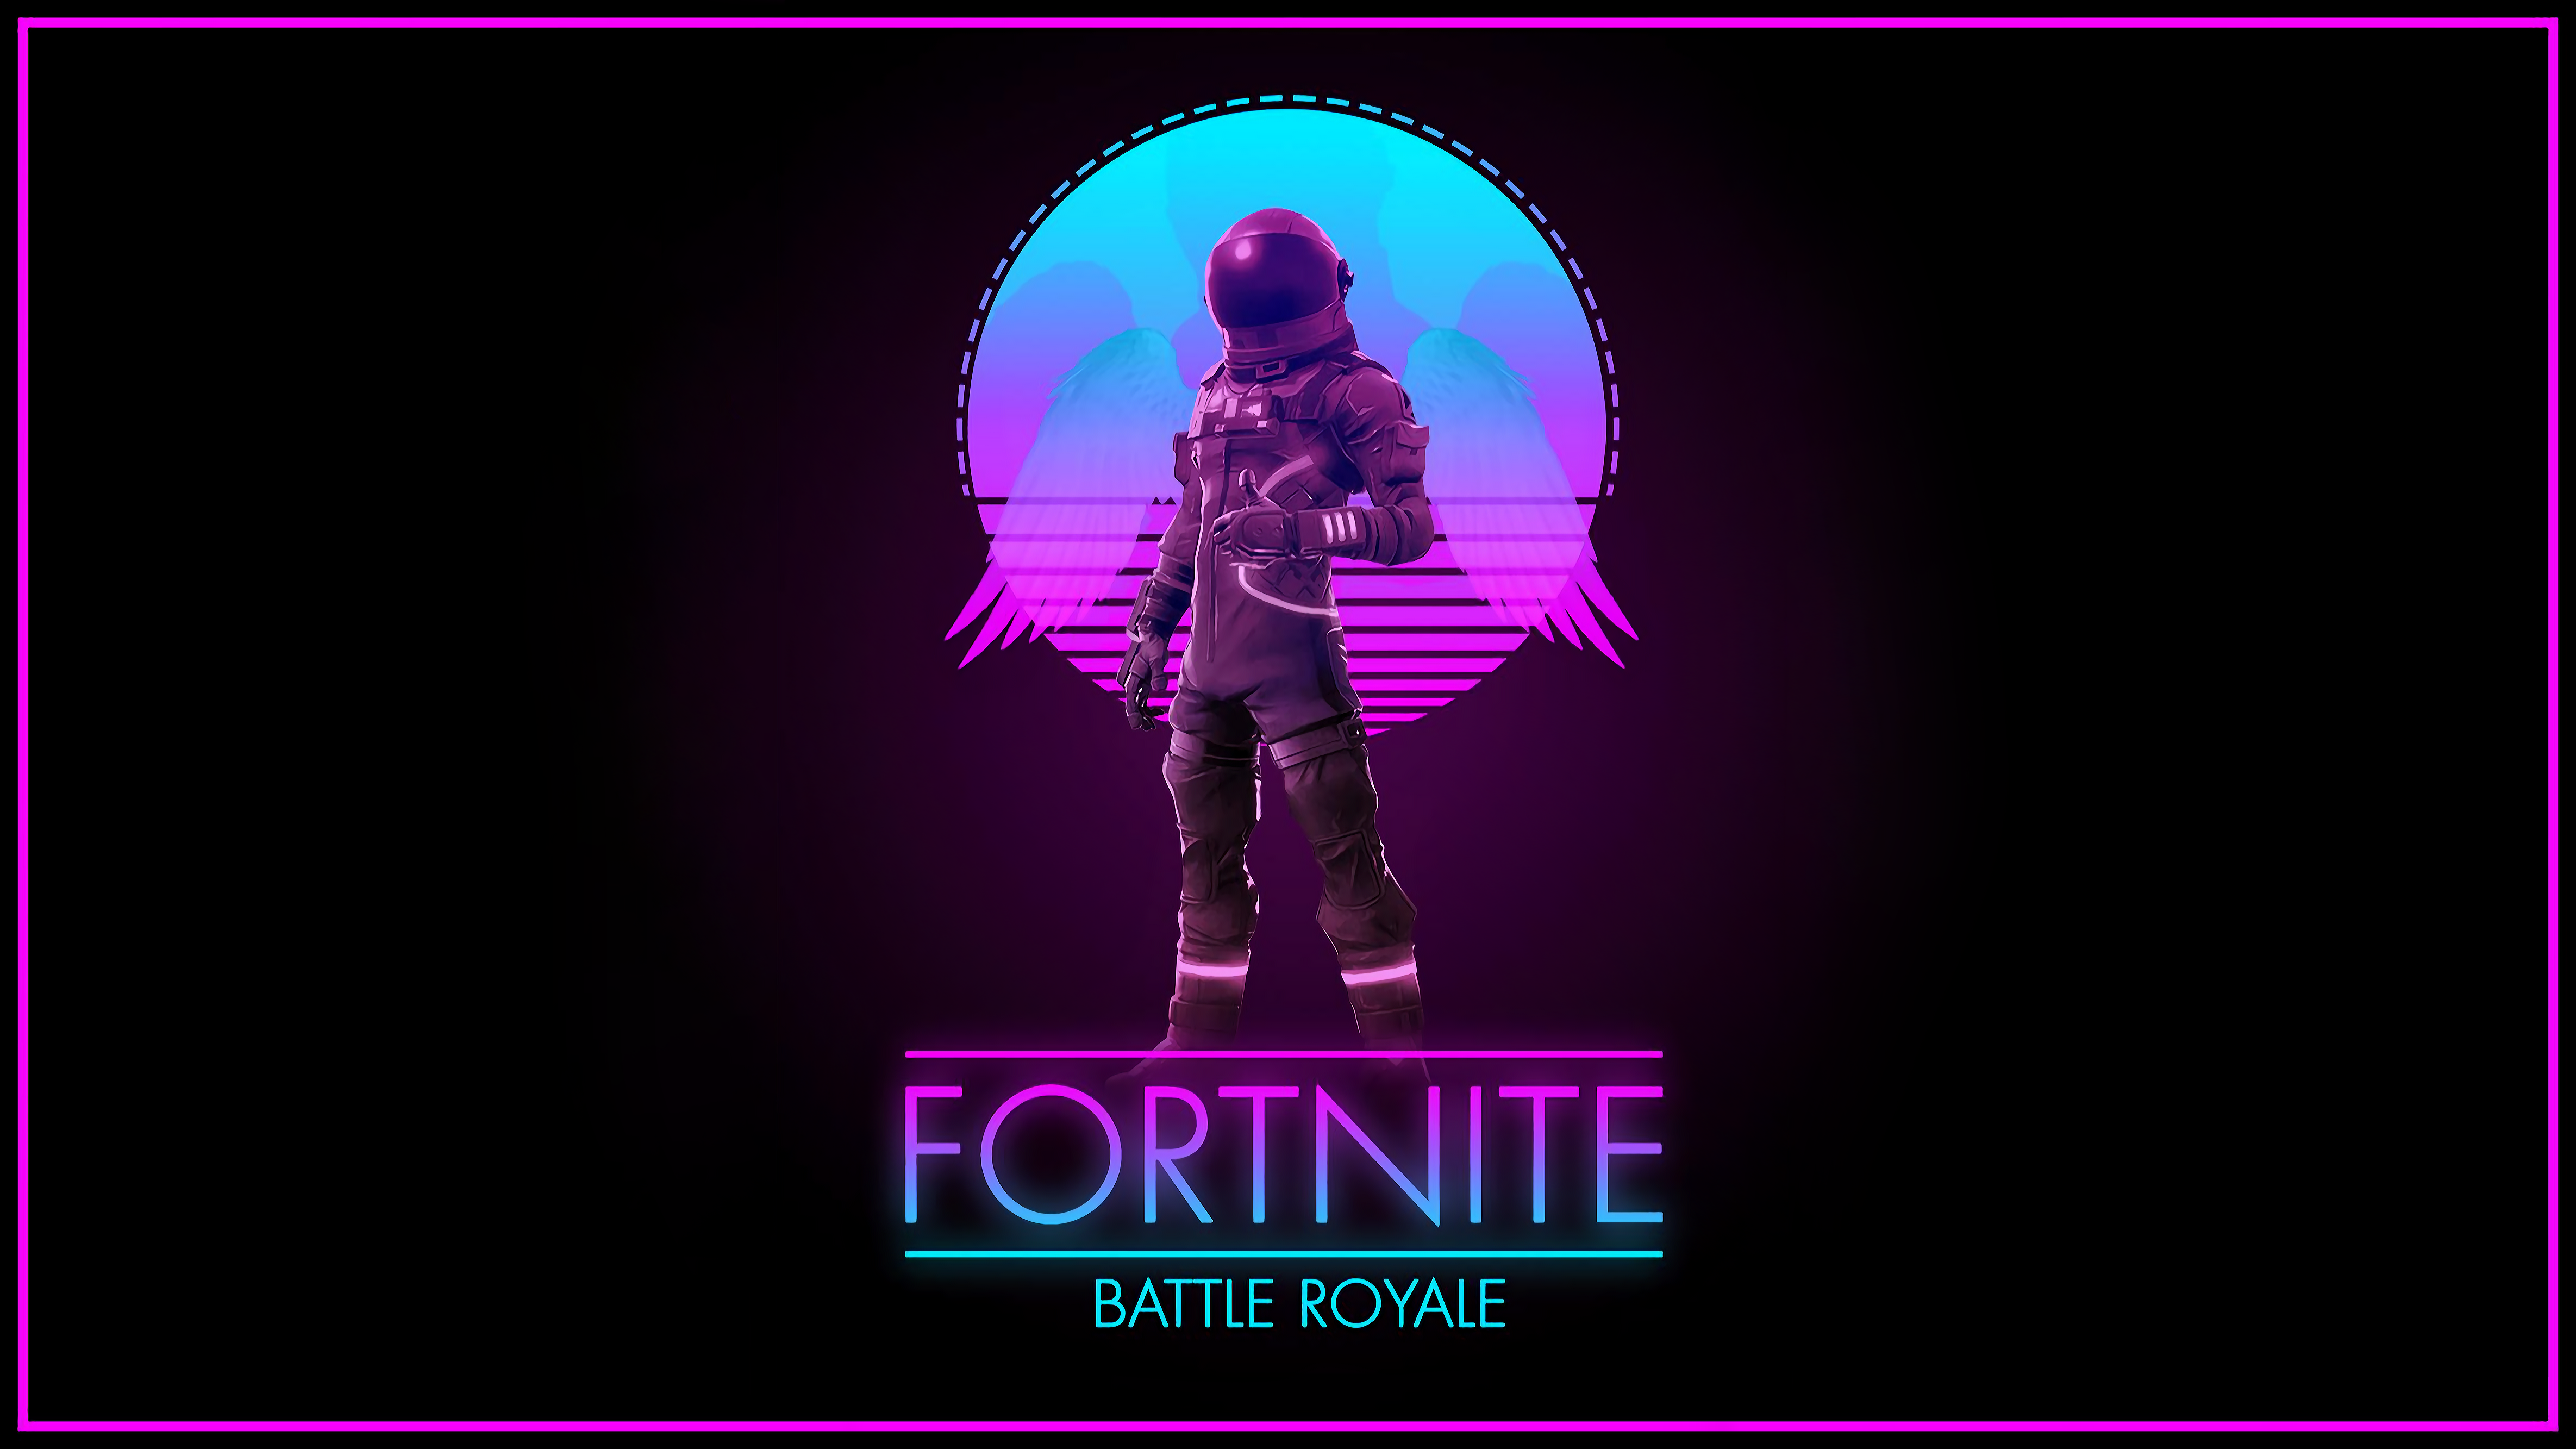 Fortnite Synthwave Royale Dodonozore34 4740x2666 Wallpapers